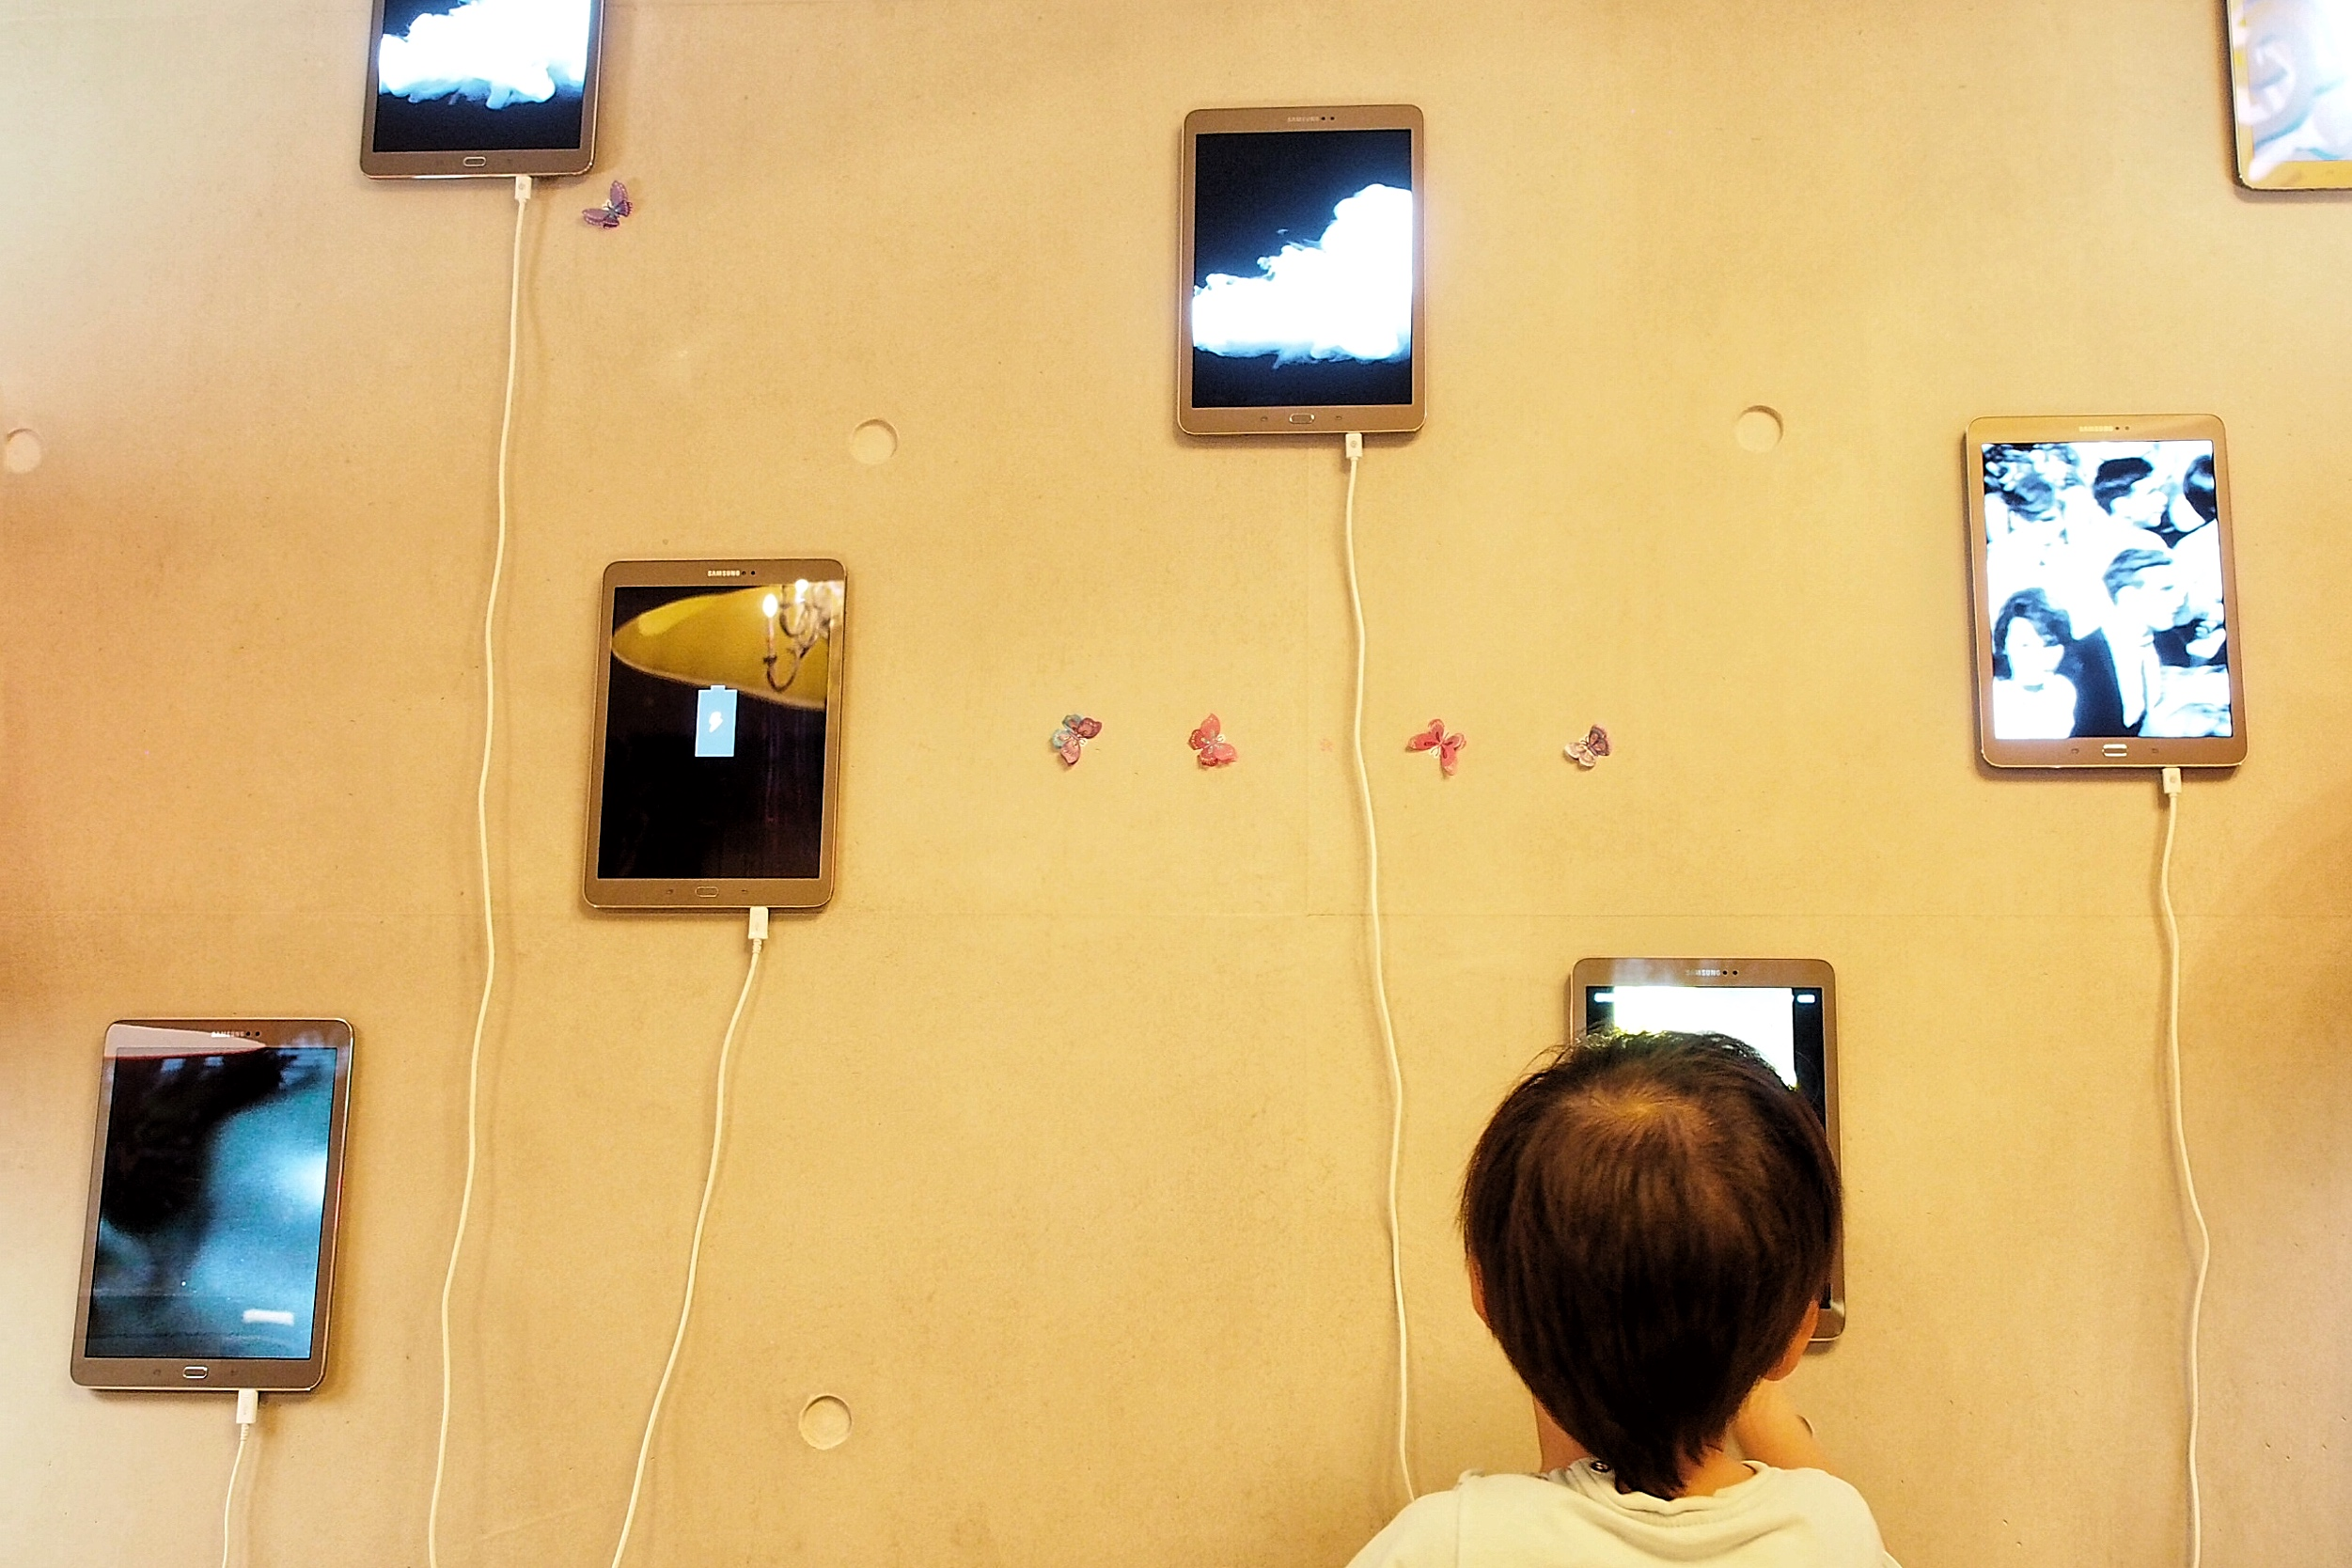 m-social-singapore-fun-staycation-spot-everyone-40-tablets-screening -contemporary-artworks.jpg